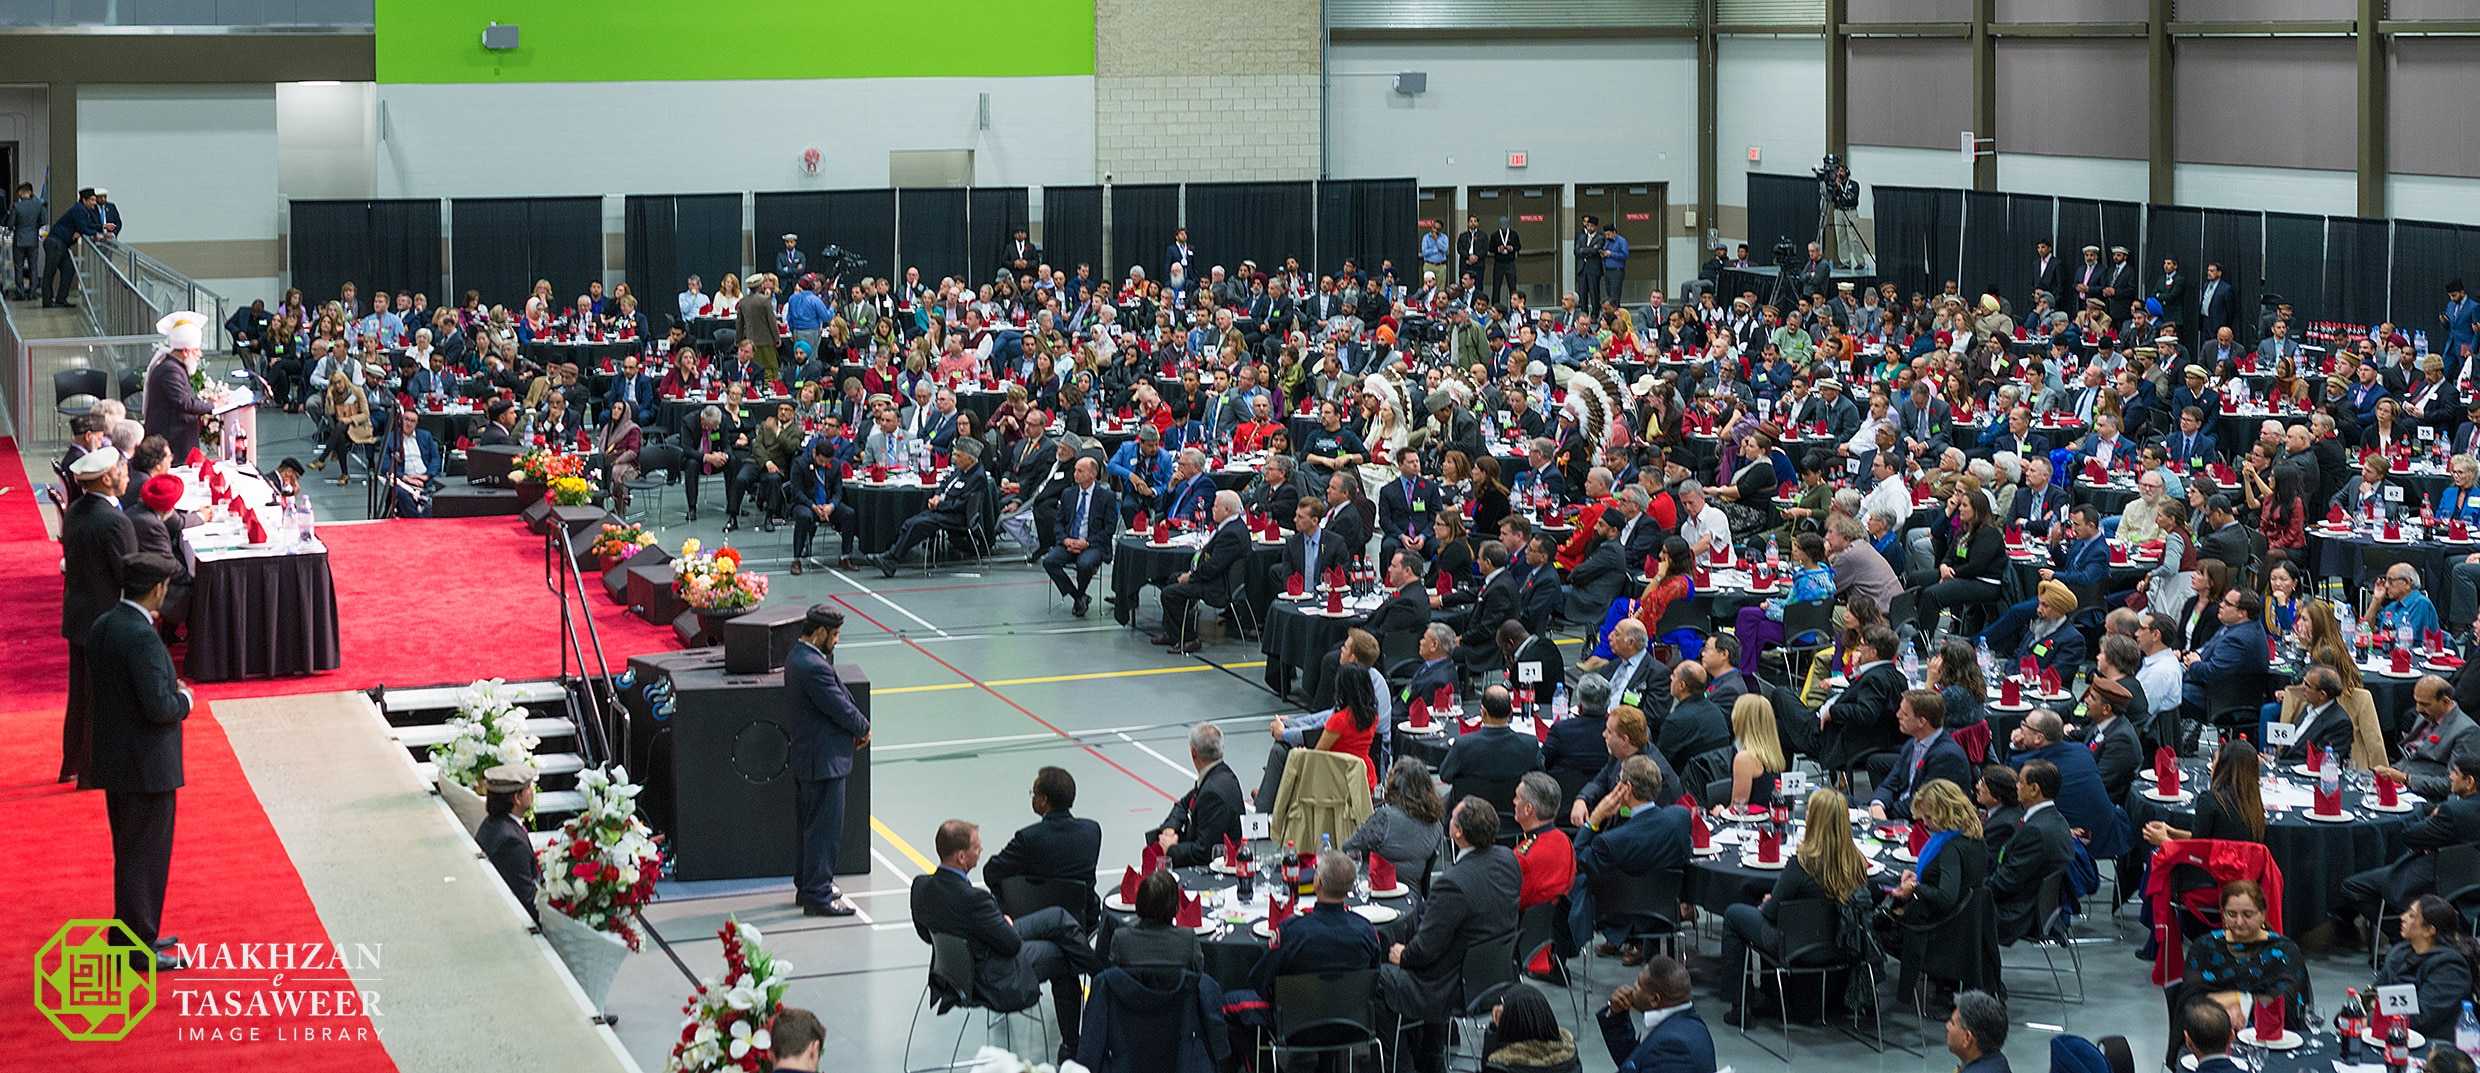 His Holiness, Hazrat Mirza Masroor Ahmadaba, delivered the keynote address at the Calgary Peace Symposium